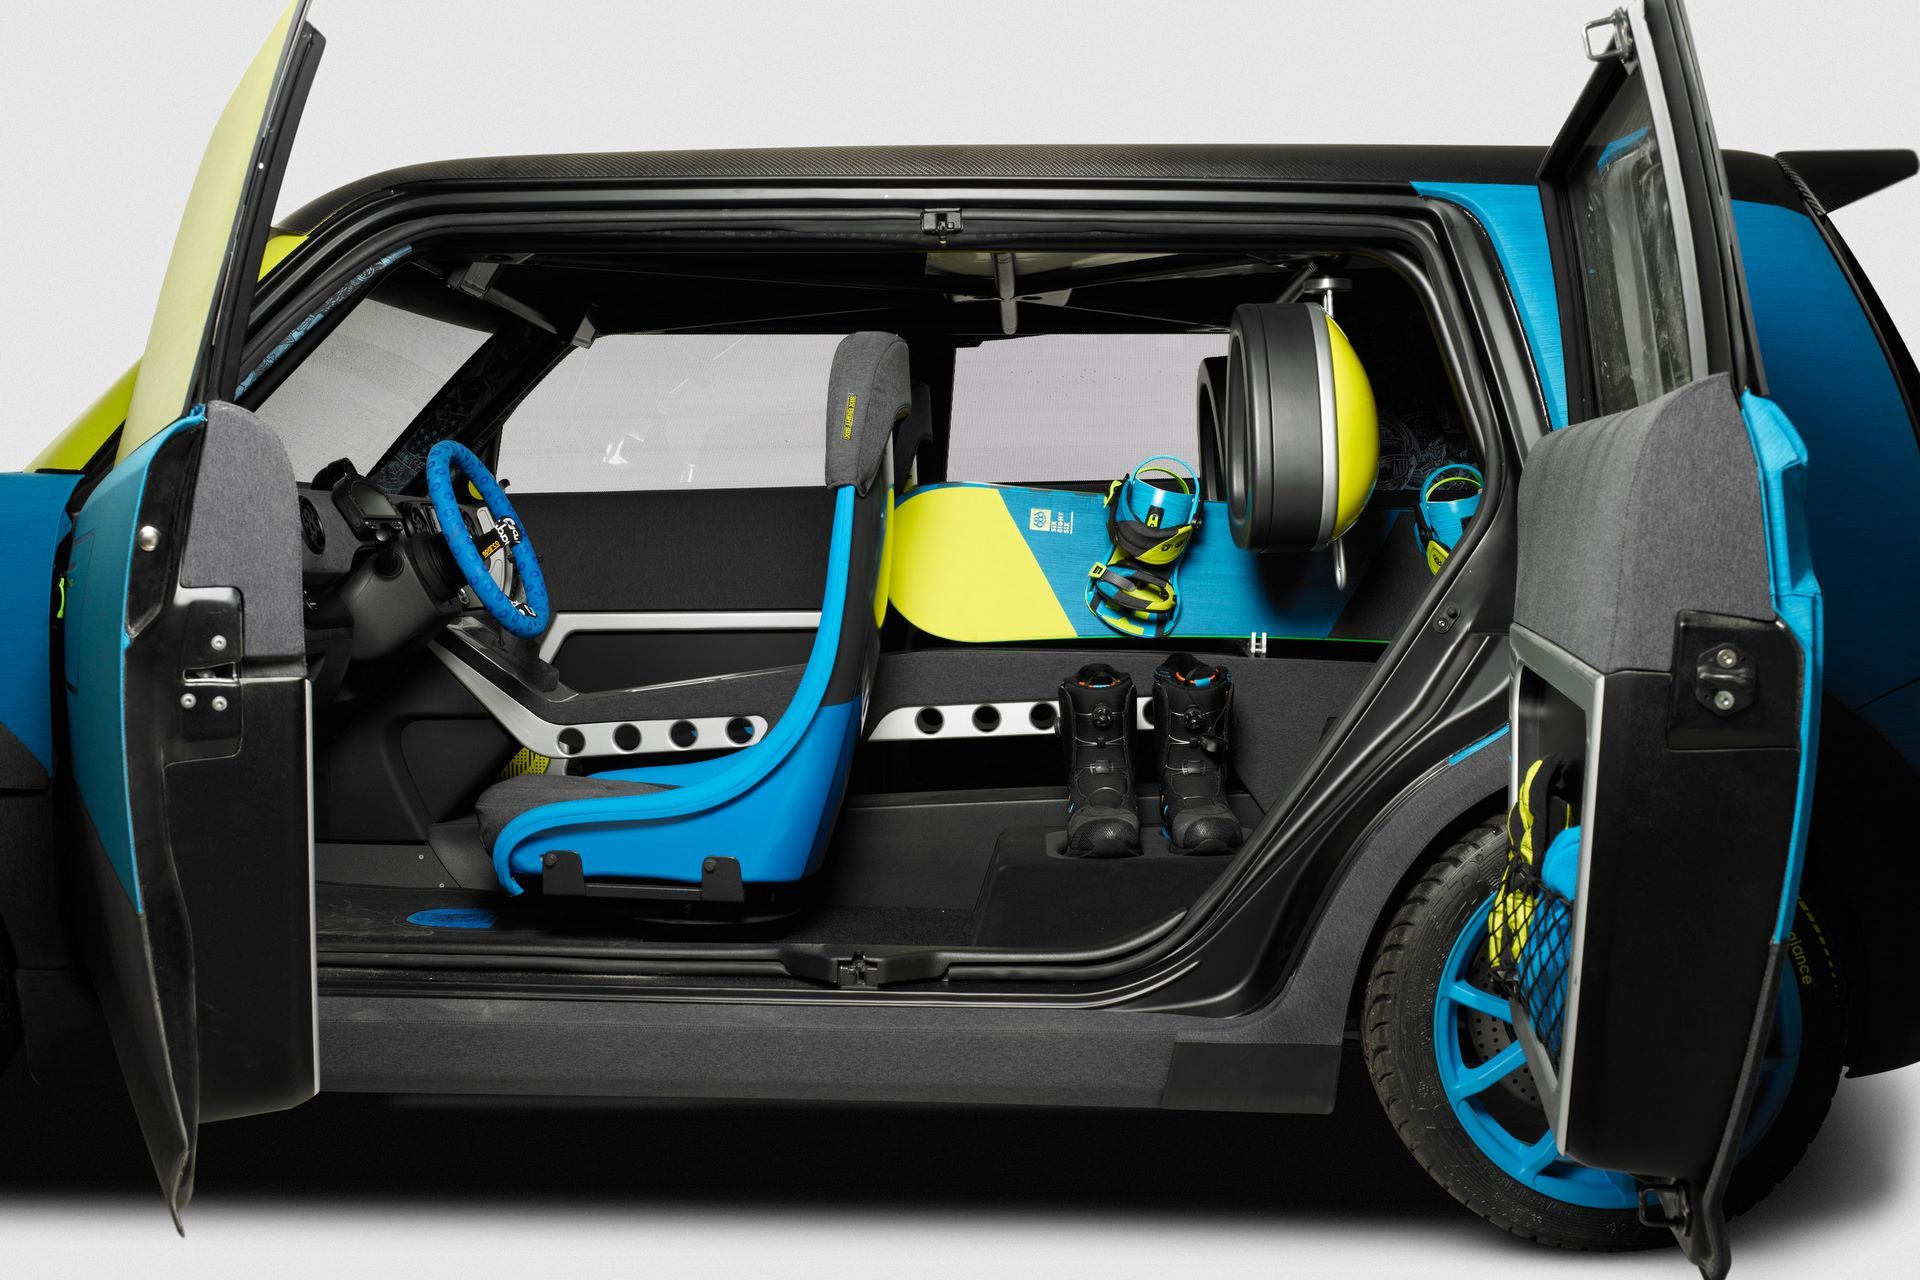 Kind of digging this modified scion xb